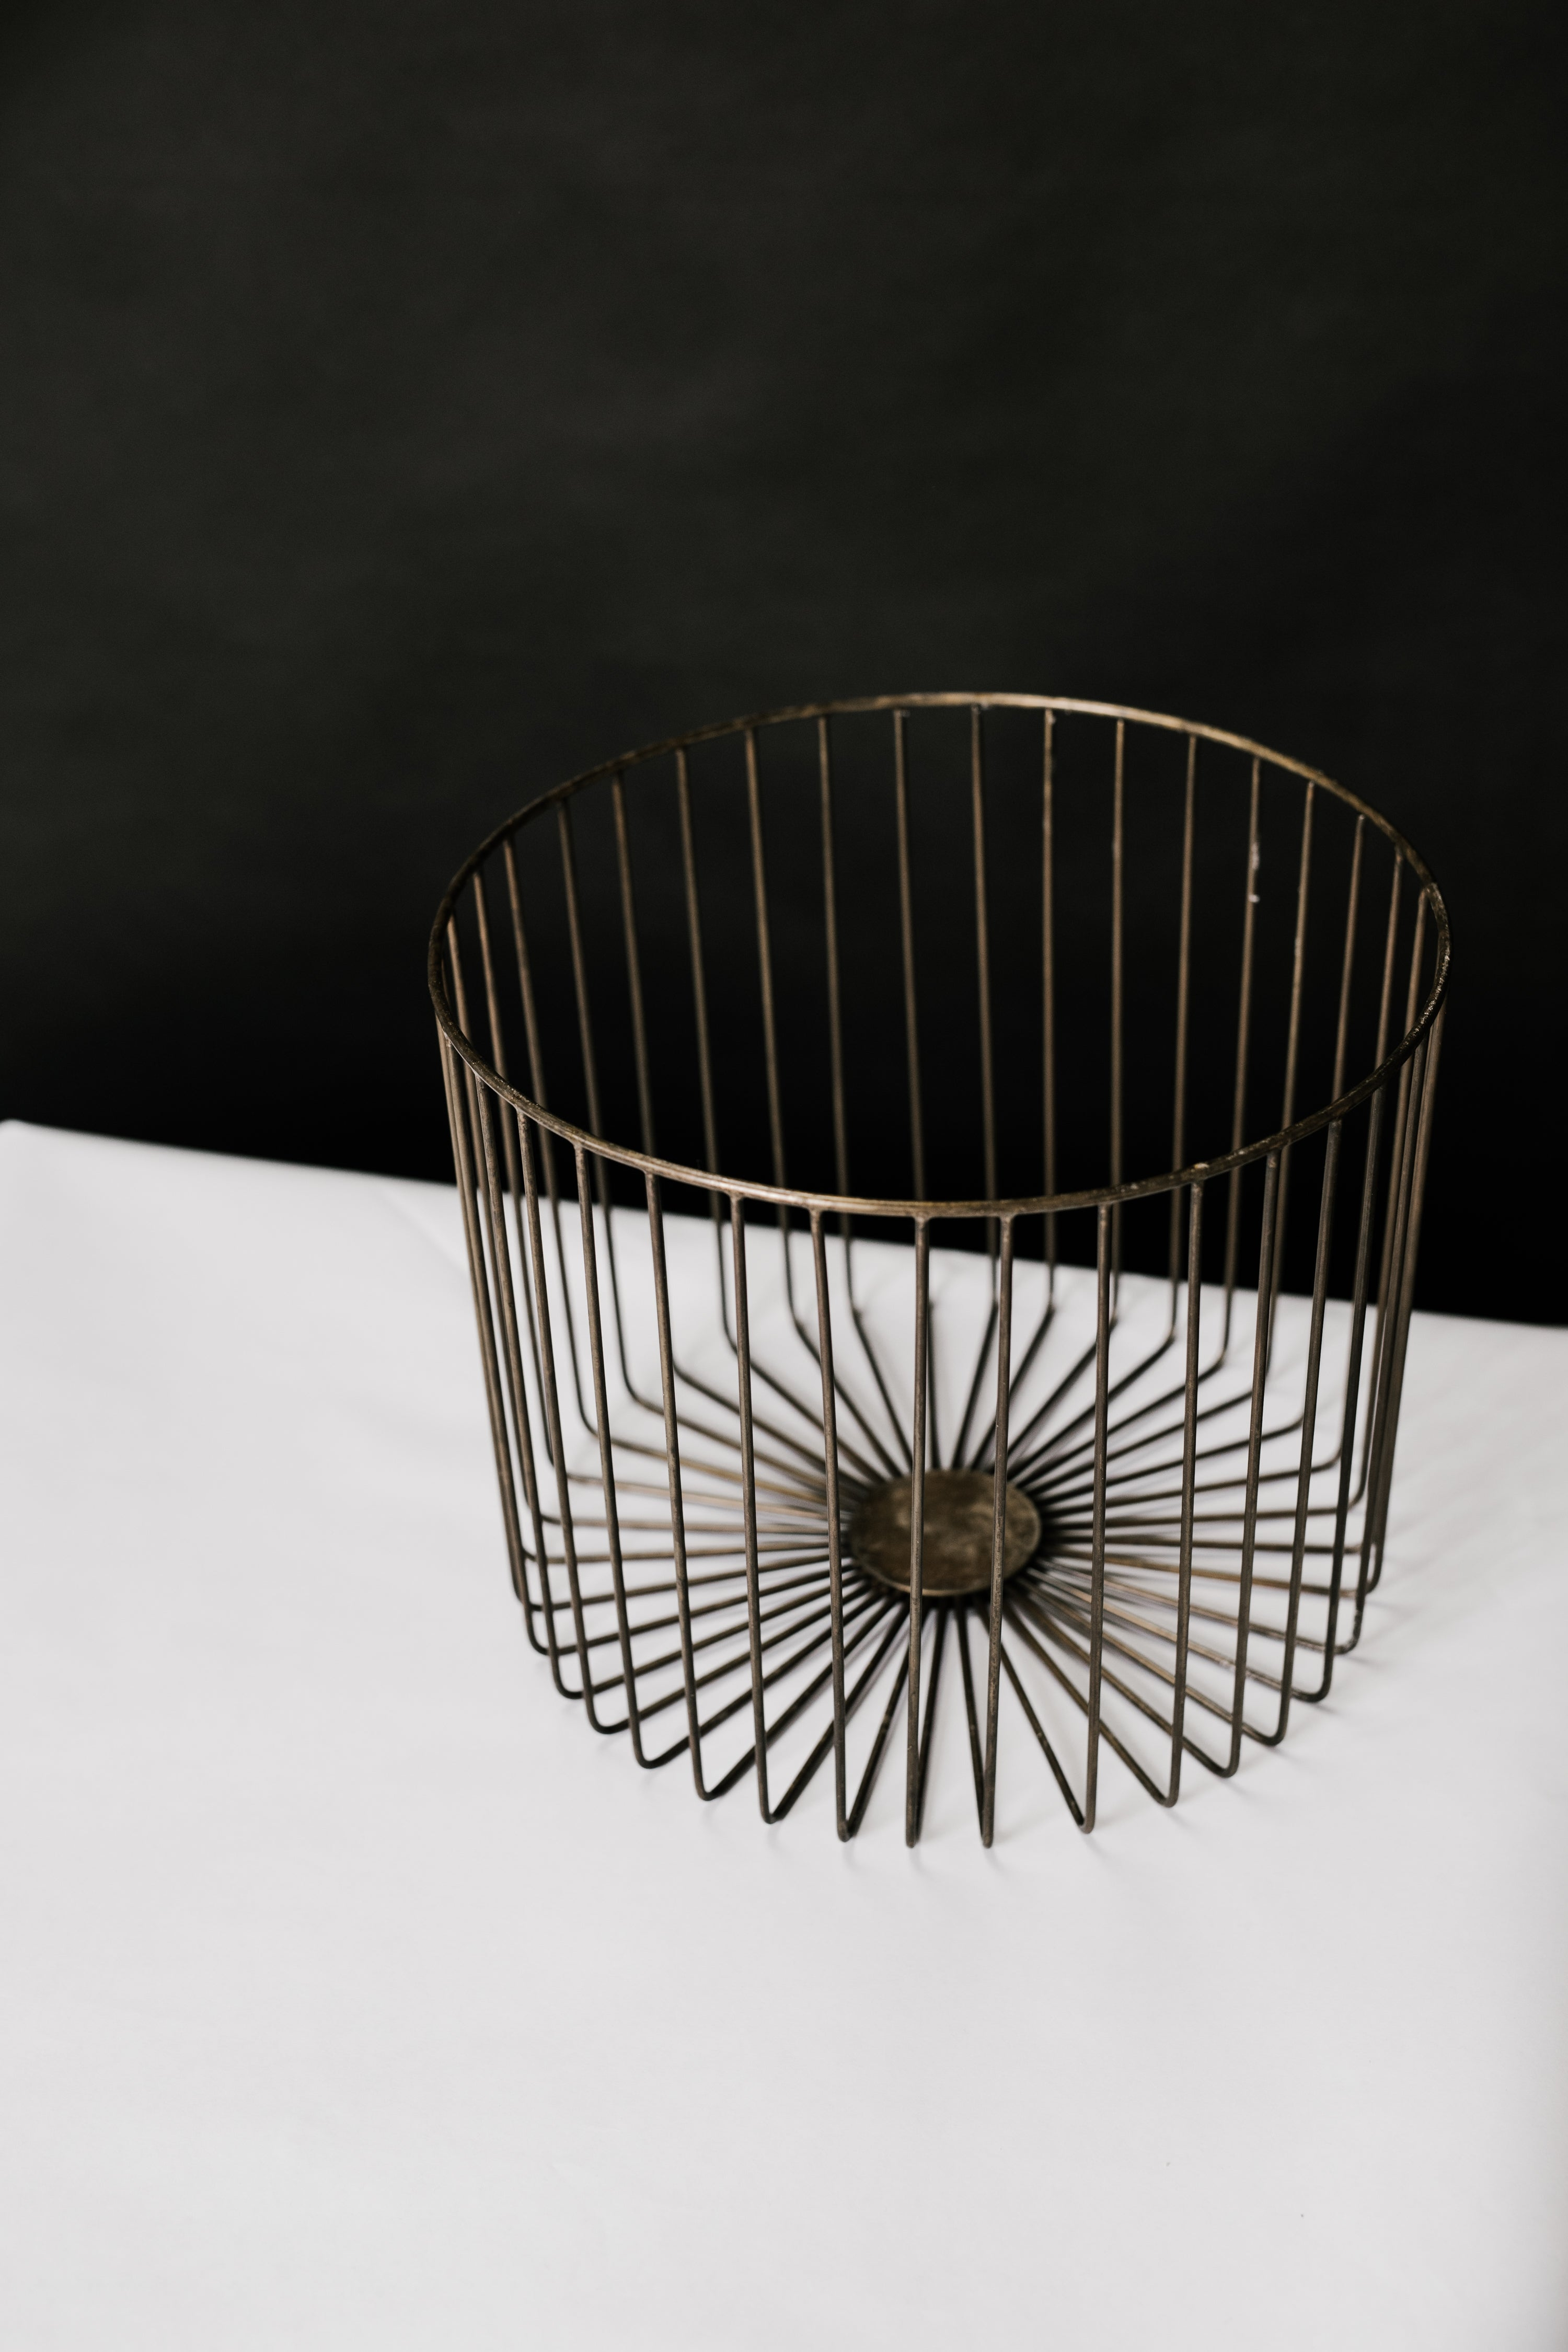 Antique Brass Starburst Baskets (Set of 3) - Elizabeth Hales Design